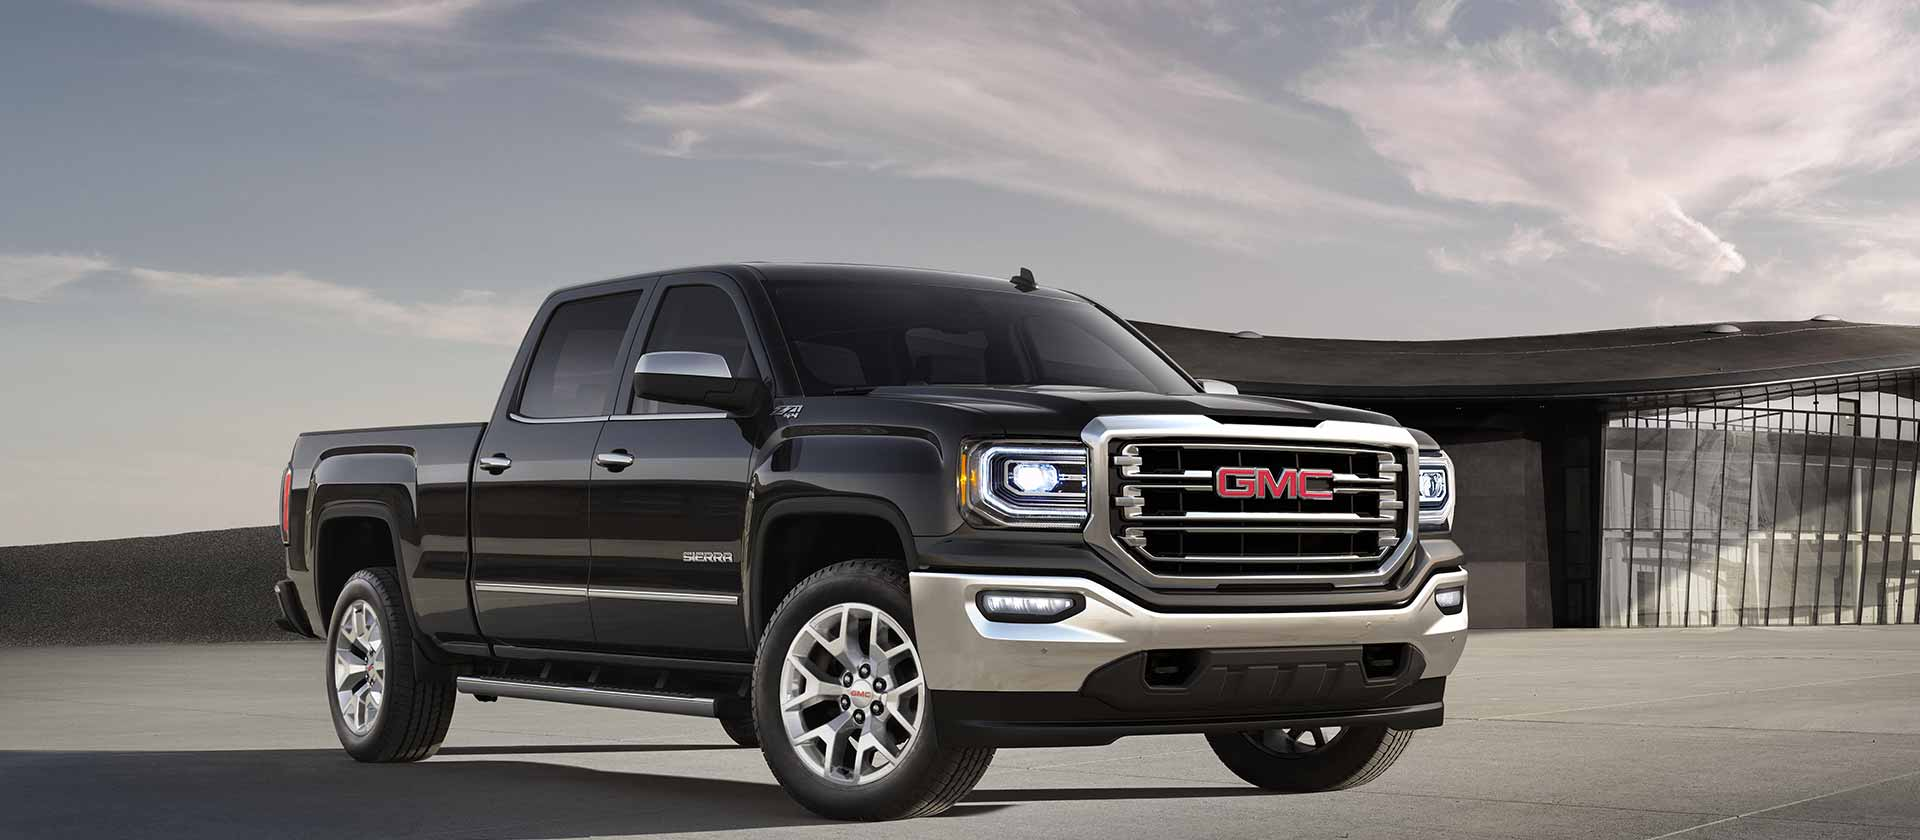 2017 GMC Sierra Denali 1500 Crew Cab photo - 2